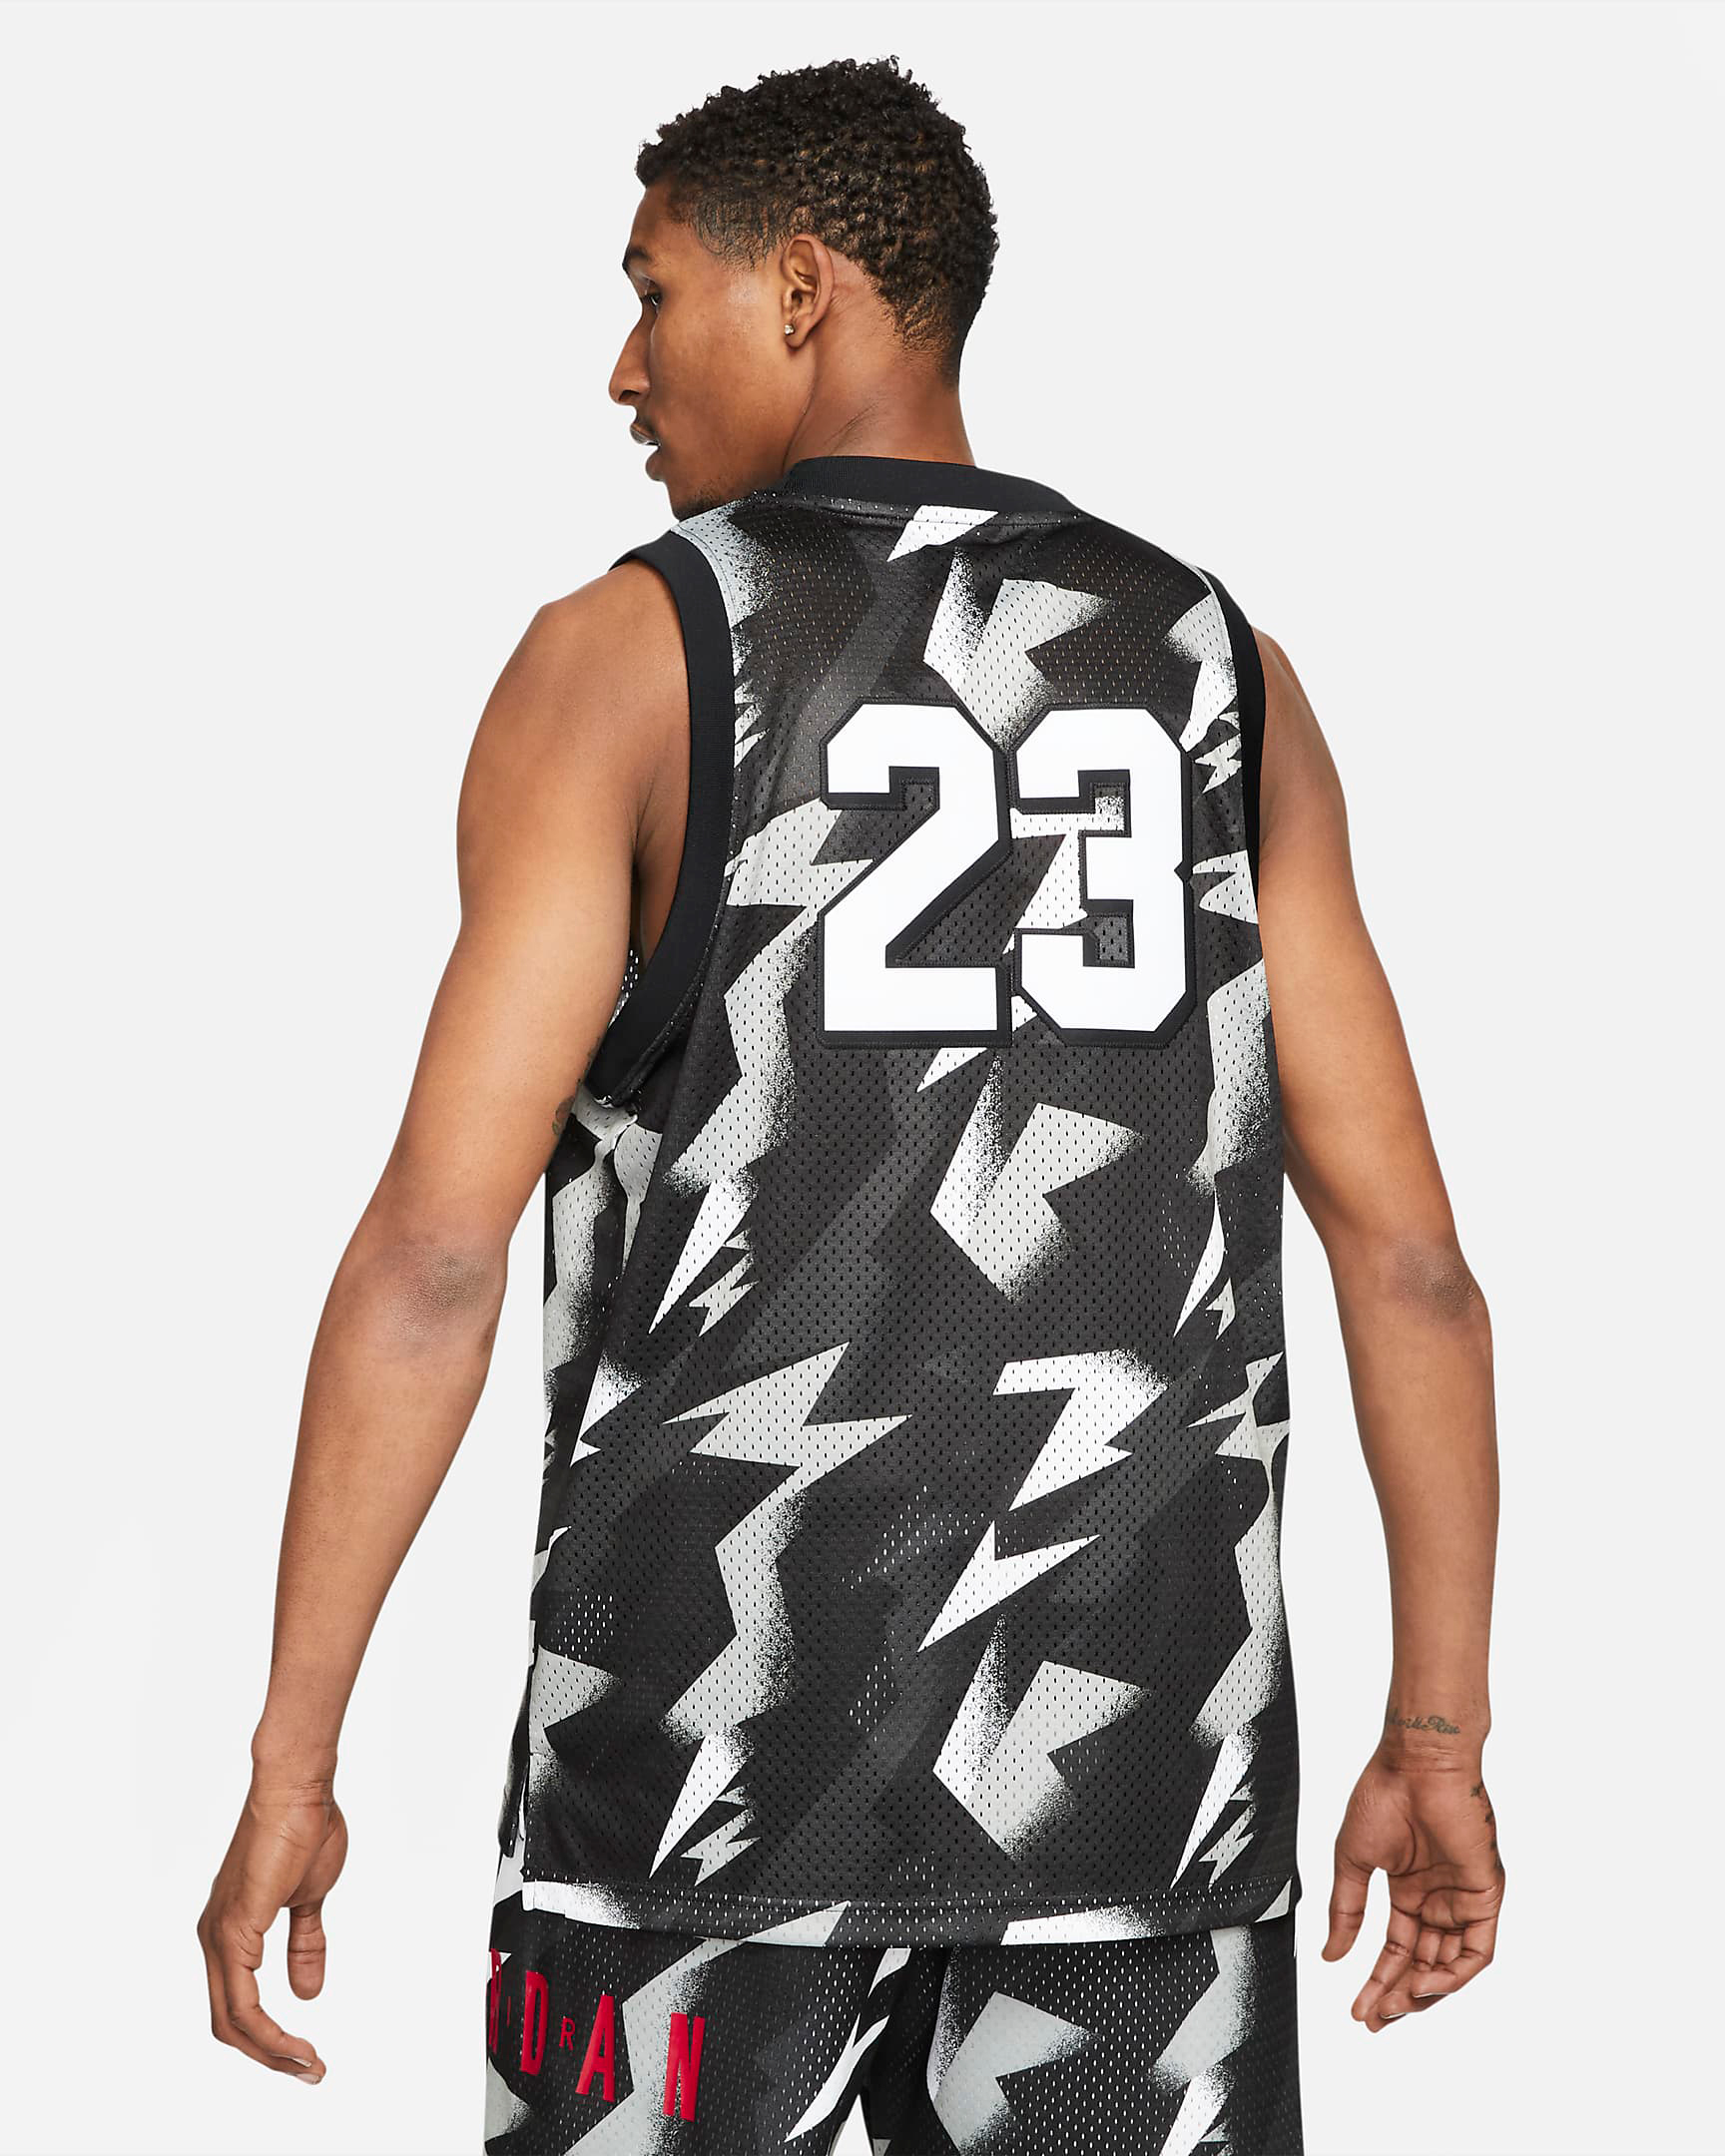 jordan-jumpman-printed-jersey-black-white-red-4